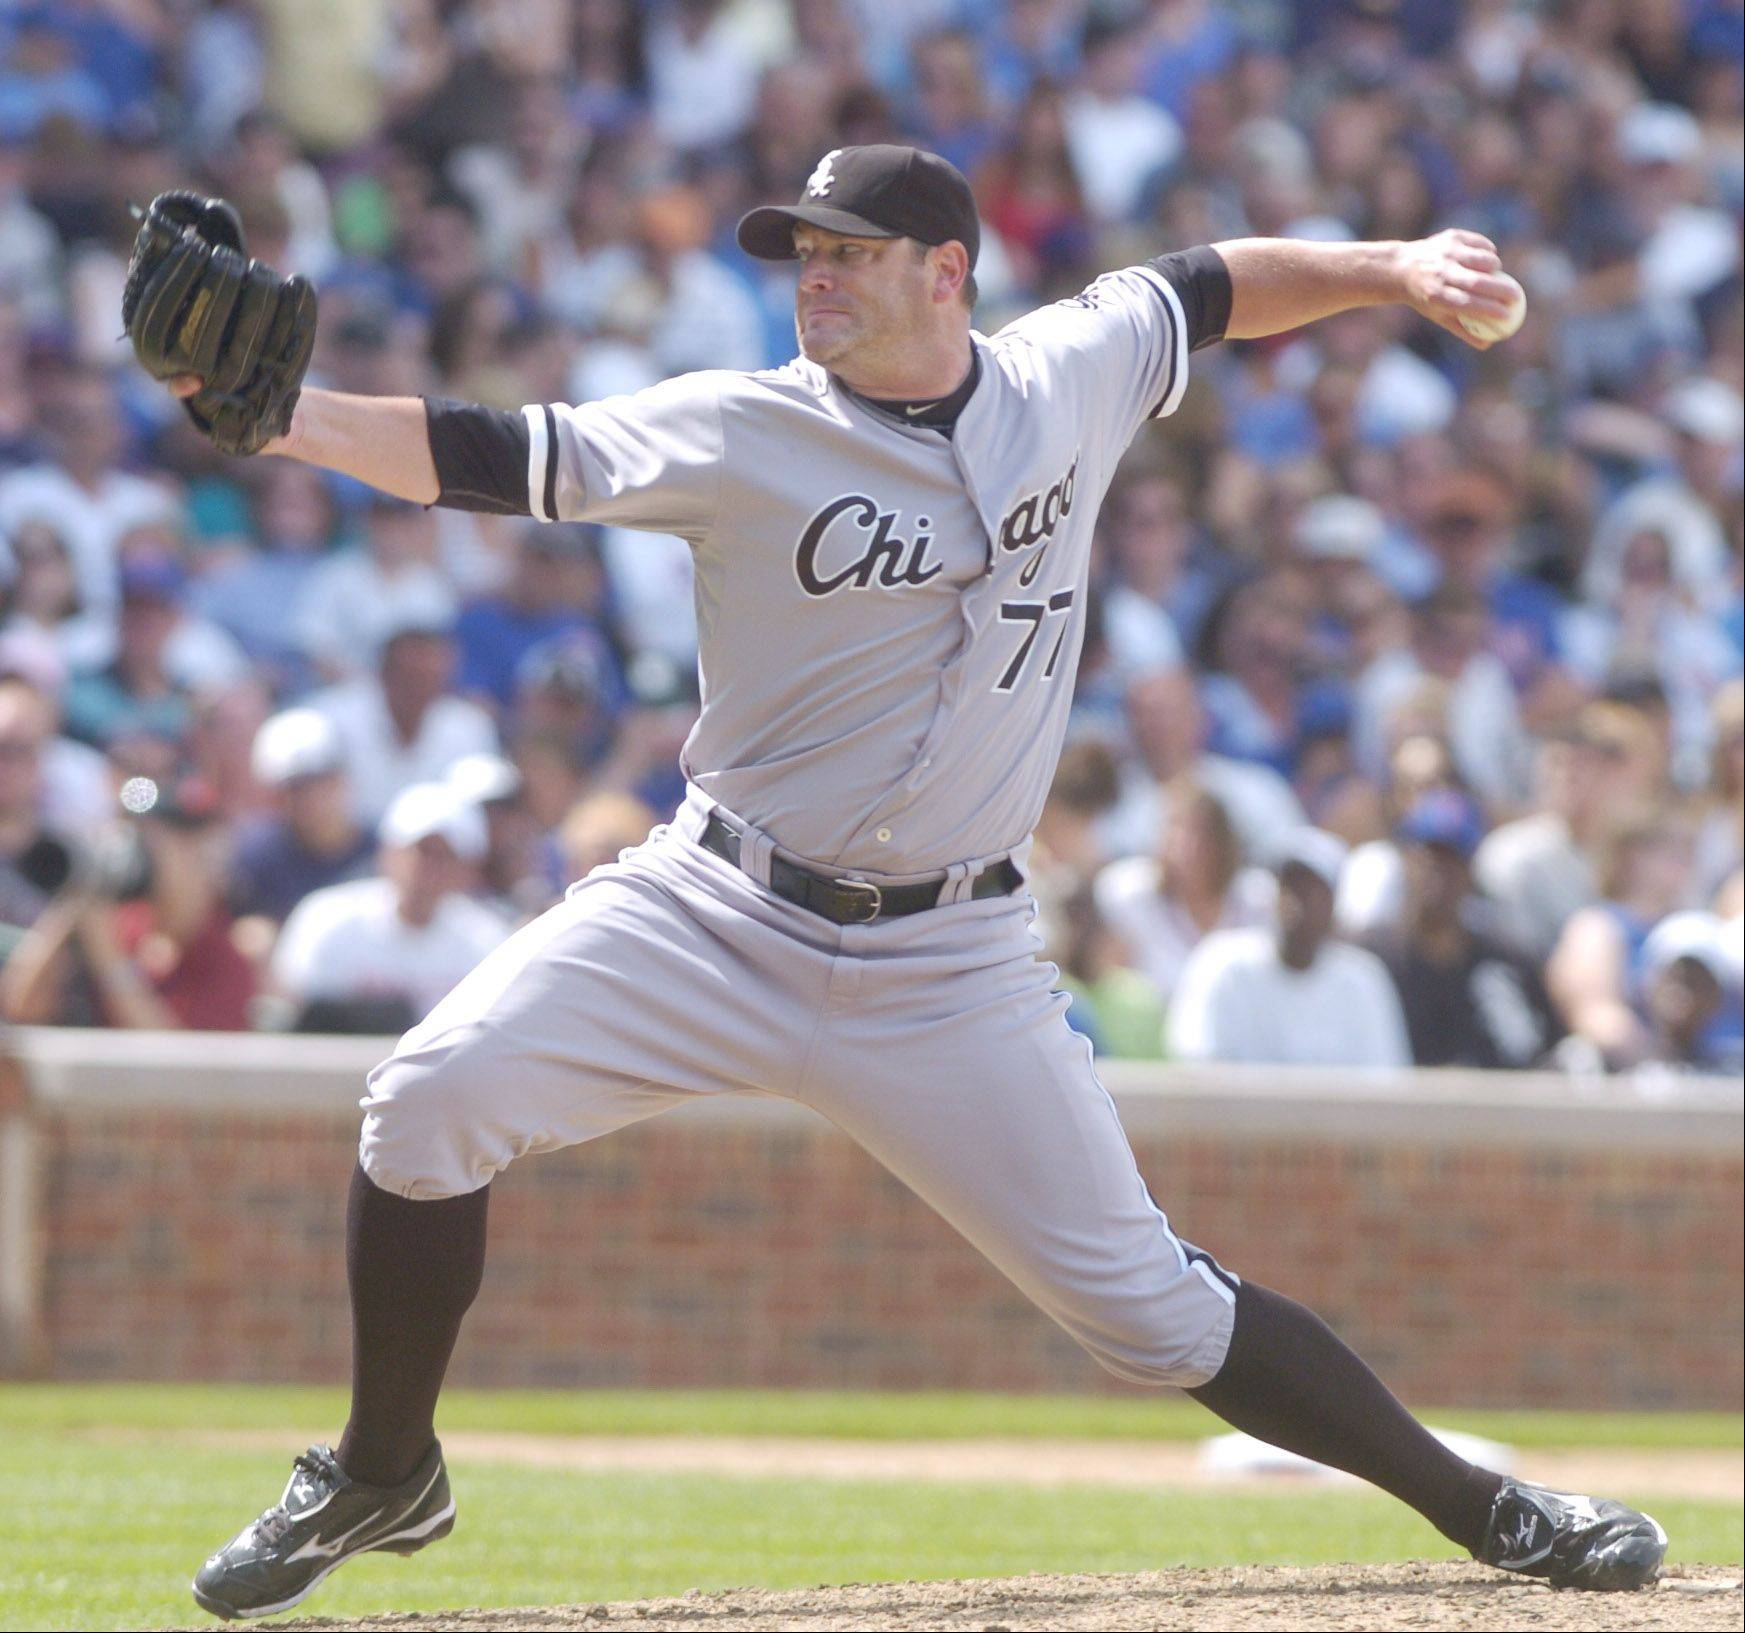 White Sox pitcher Will Ohman delivers against the Cubs during Sunday's game at Wrigley Field.